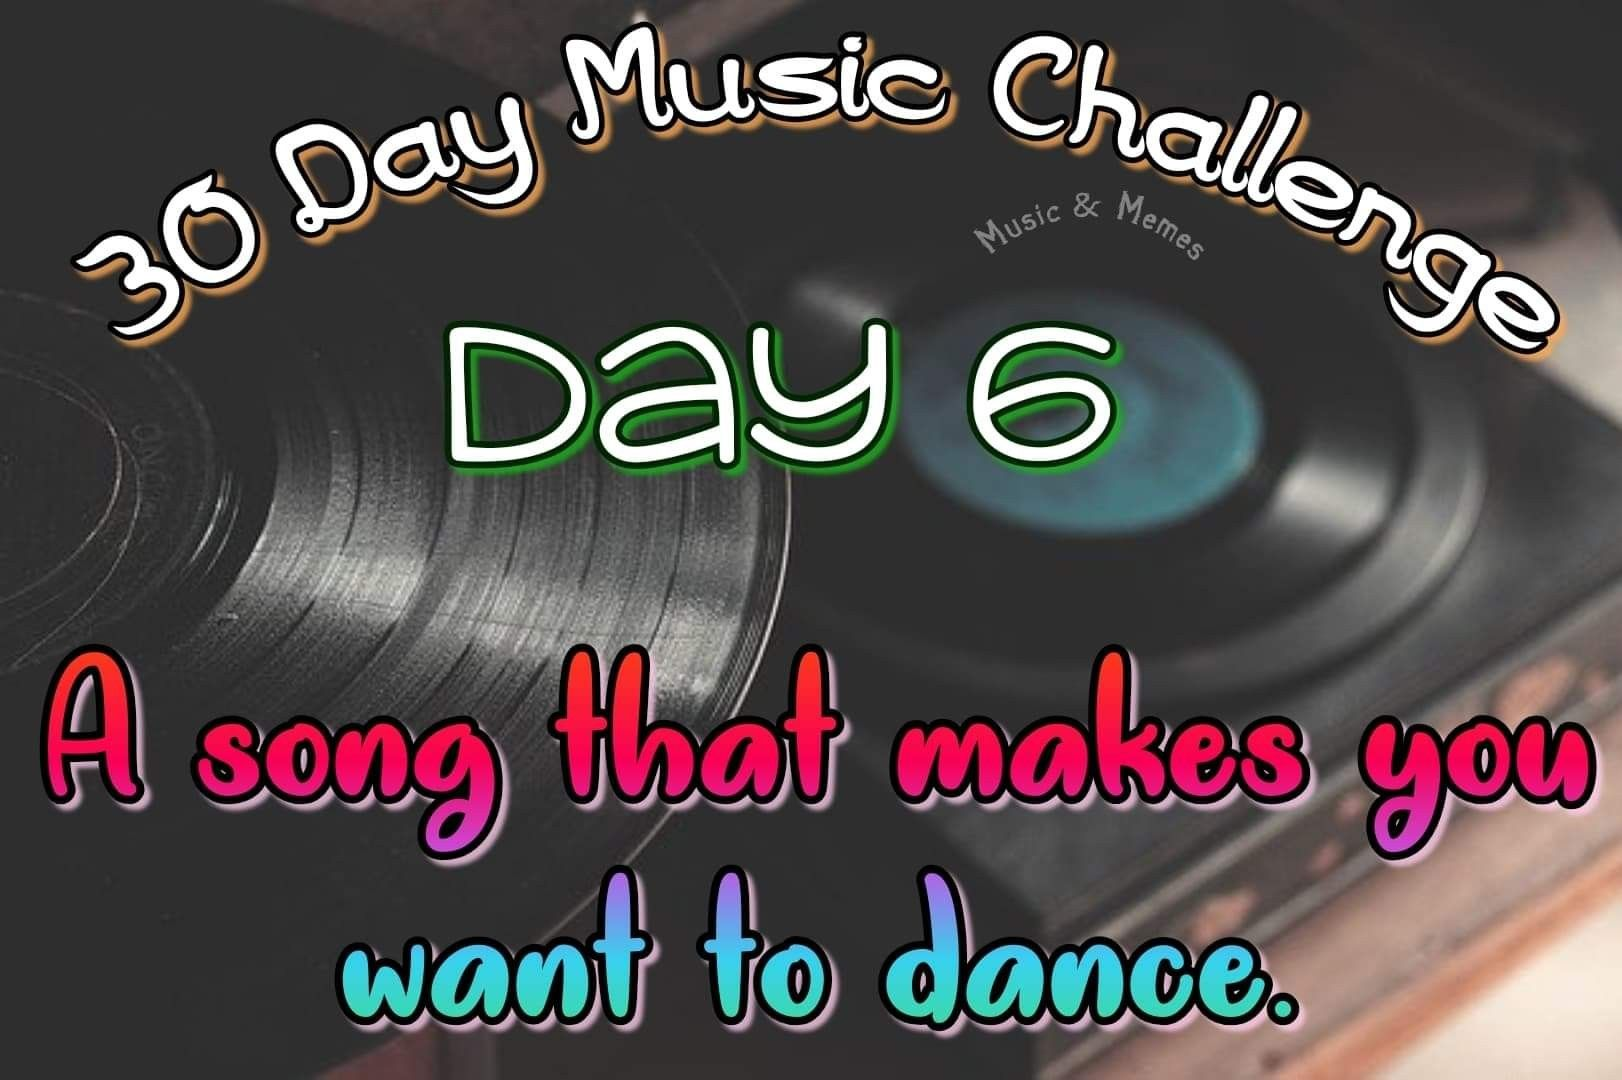 Pin By Knowledge Junkies On Music And Memes In 2020 30 Day Music Challenge Music Challenge Music Book